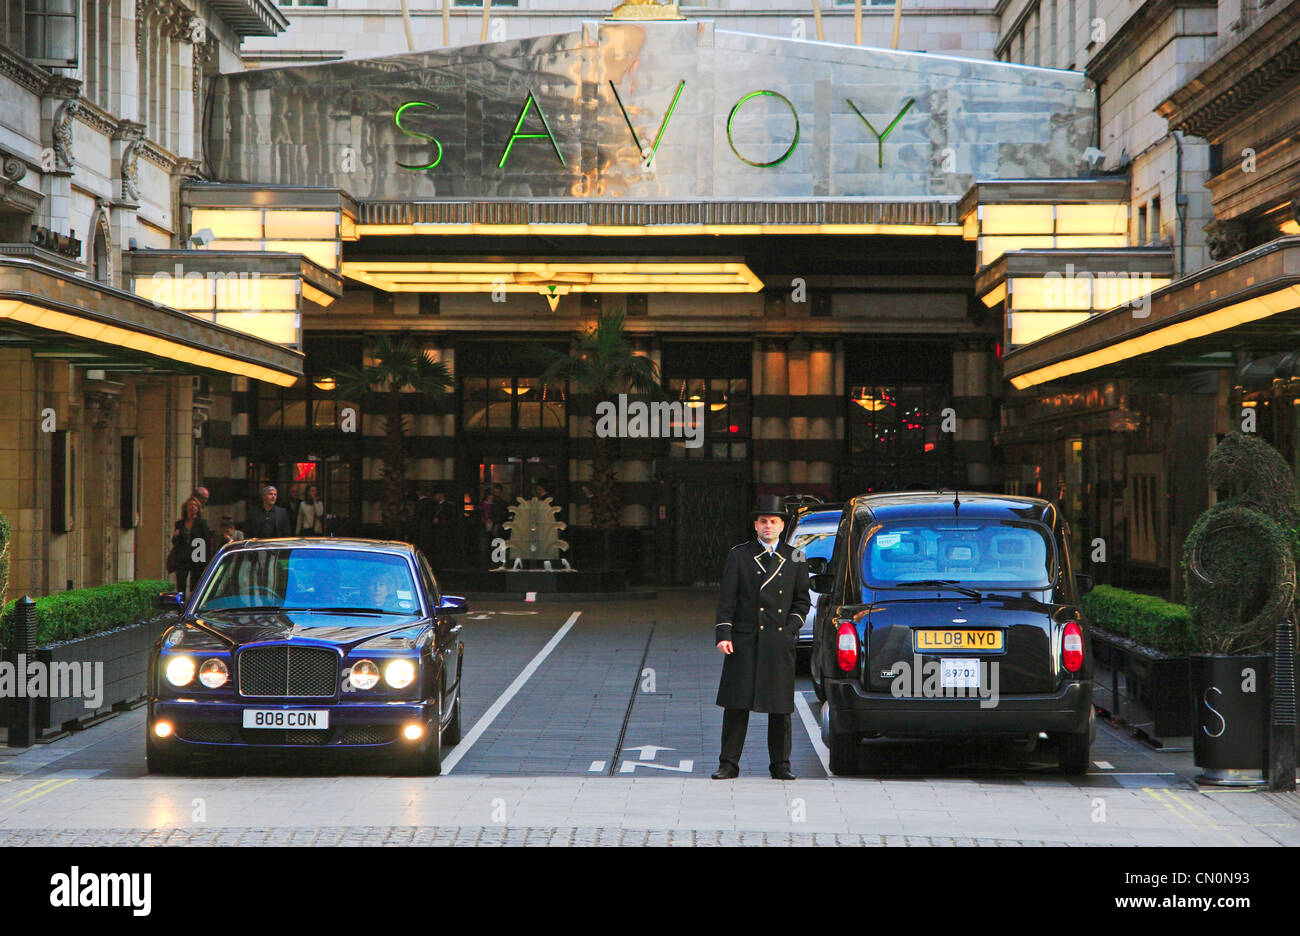 Savoy Hotel, The Strand, City of Westminster, London, England. - Stock Image